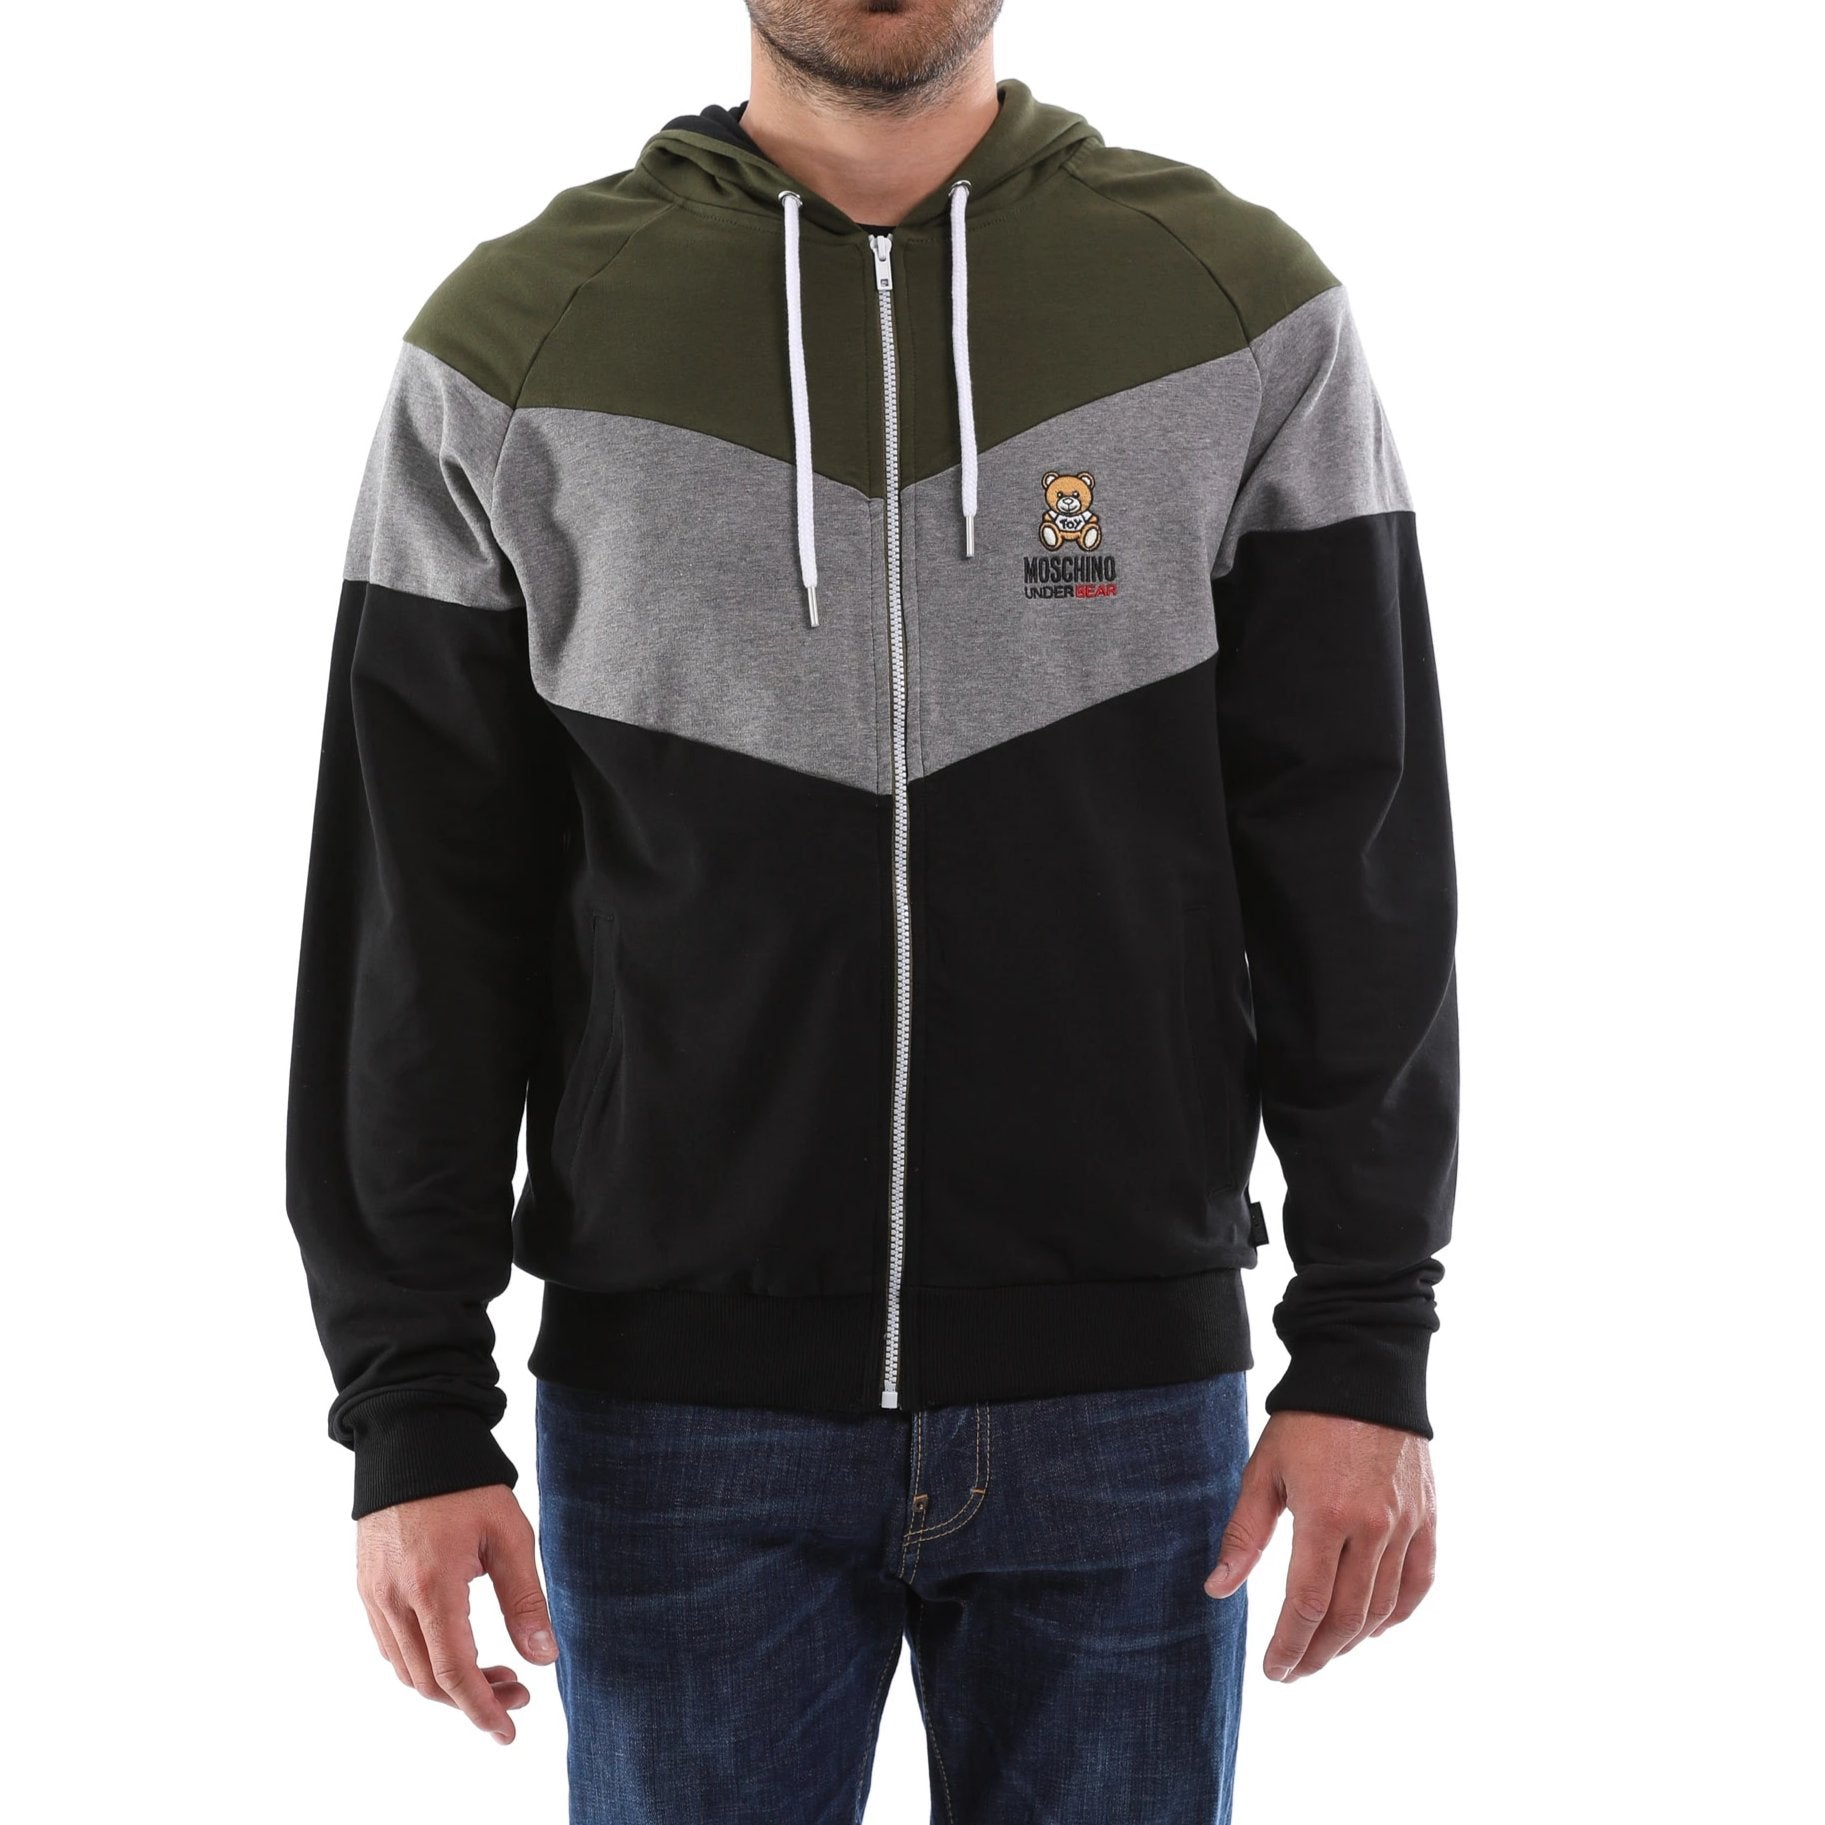 Tricolor Zipped Hoodie-MOSCHINO UNDERWEAR-SHOPATVOI.COM - Luxury Fashion Designer